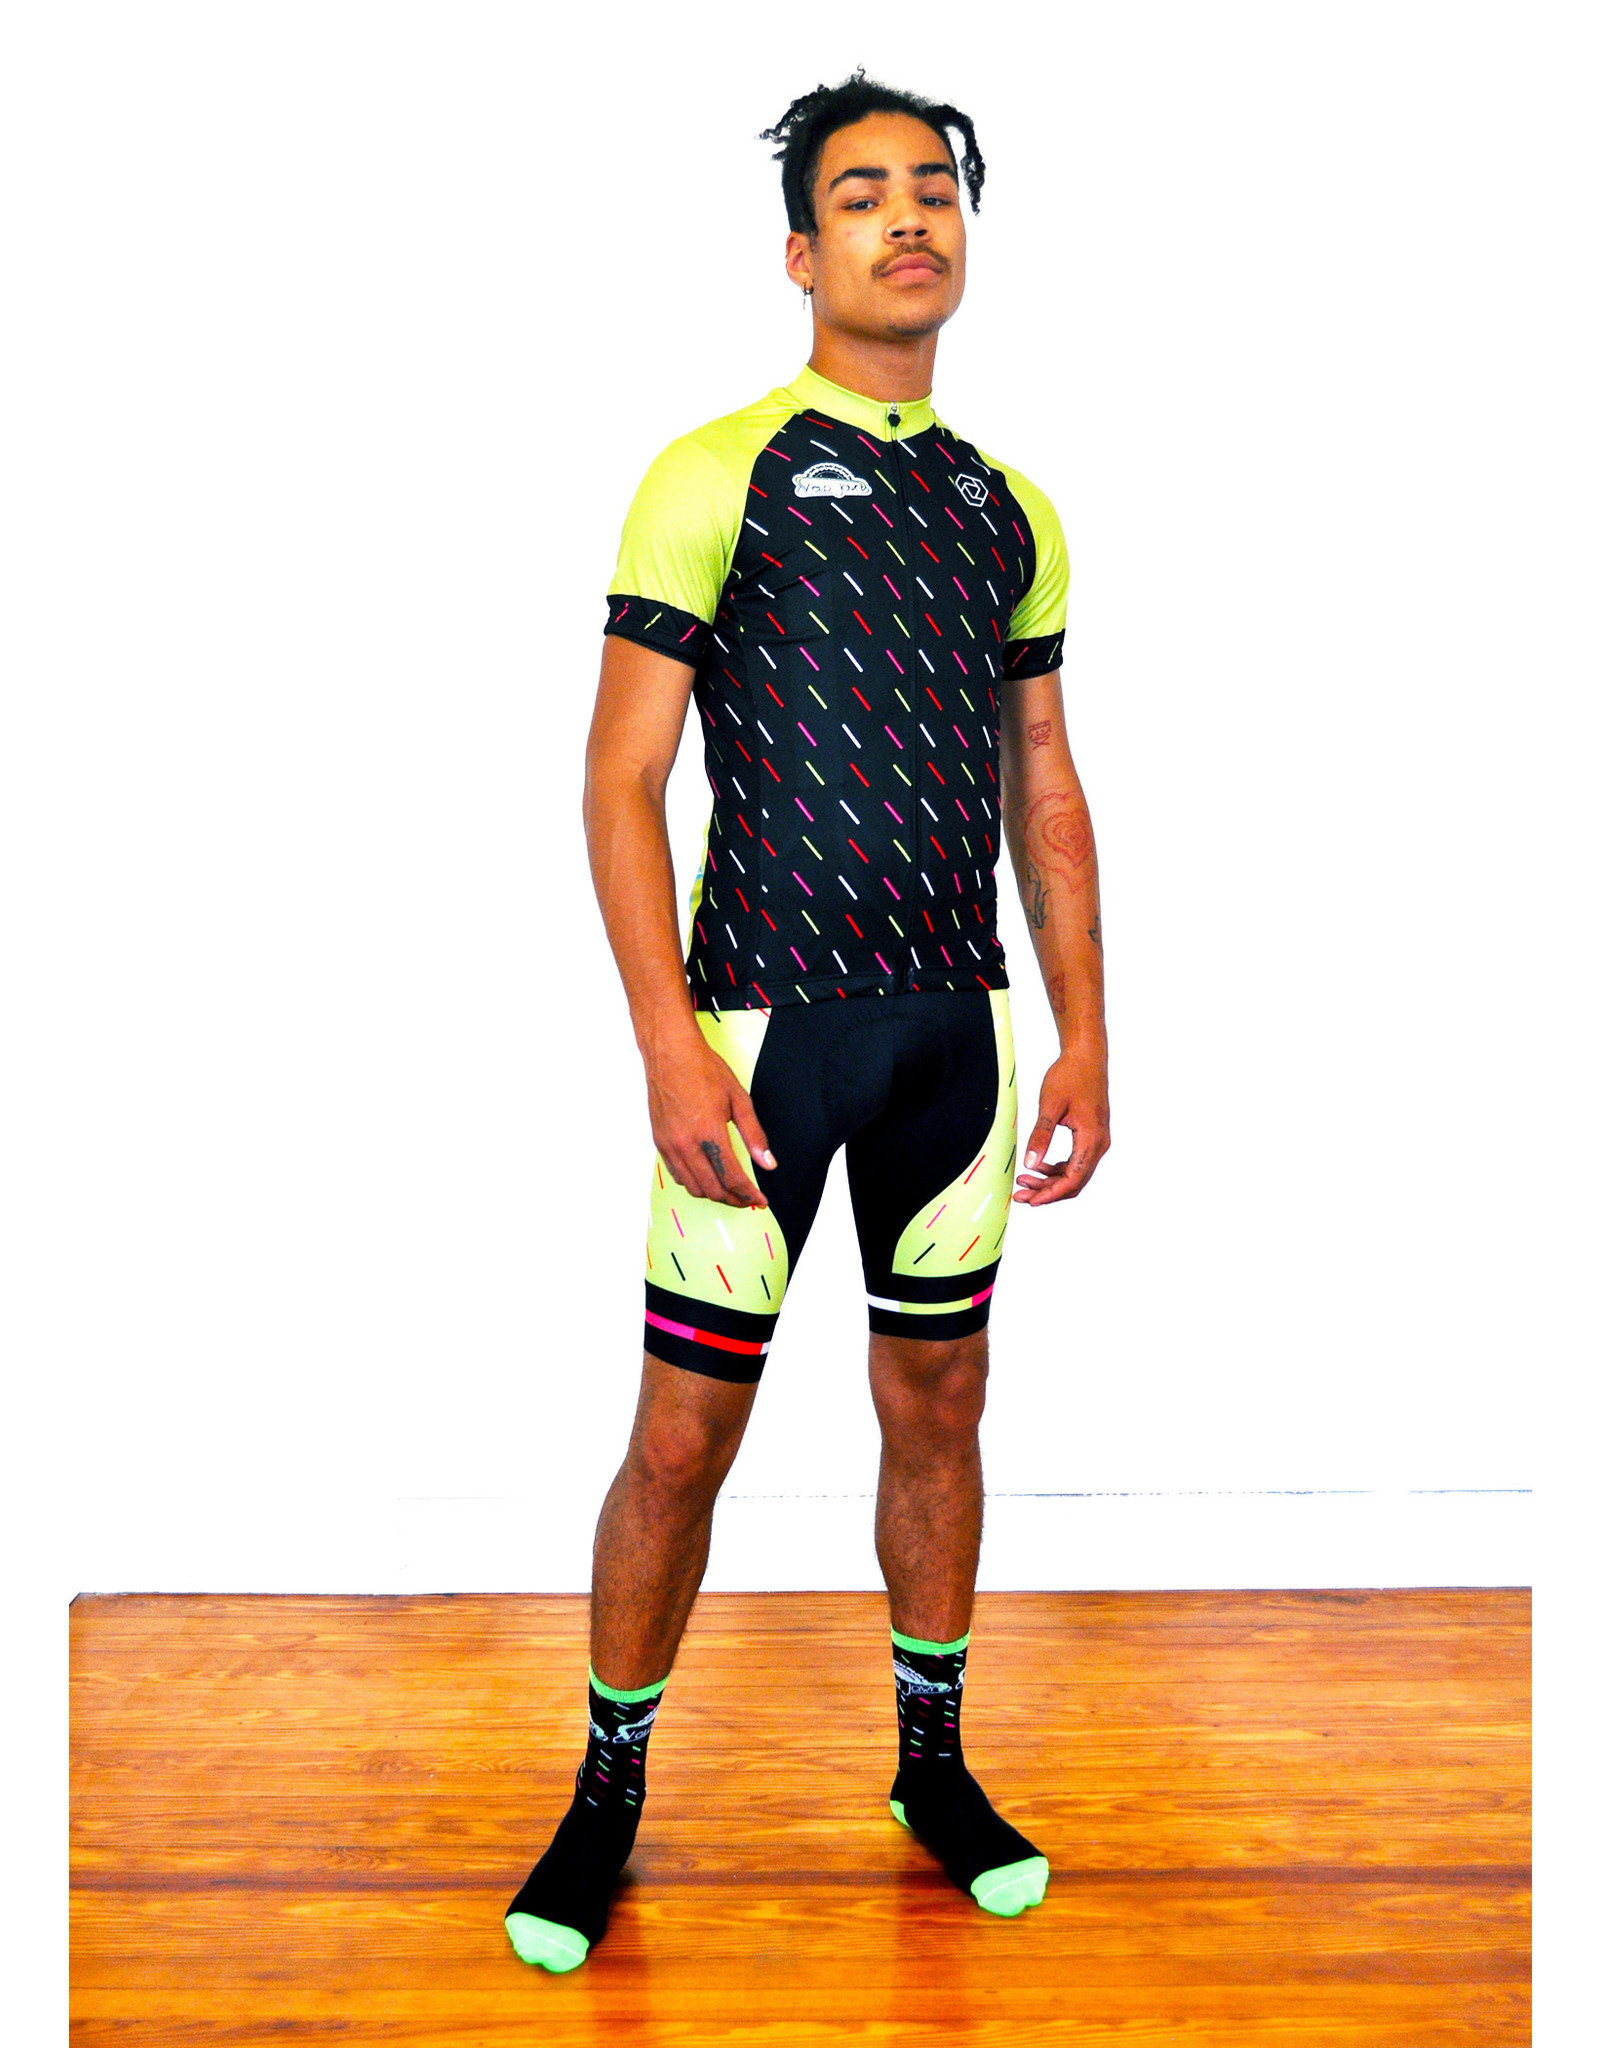 Verge Velojawn Winter Core Pro Bib